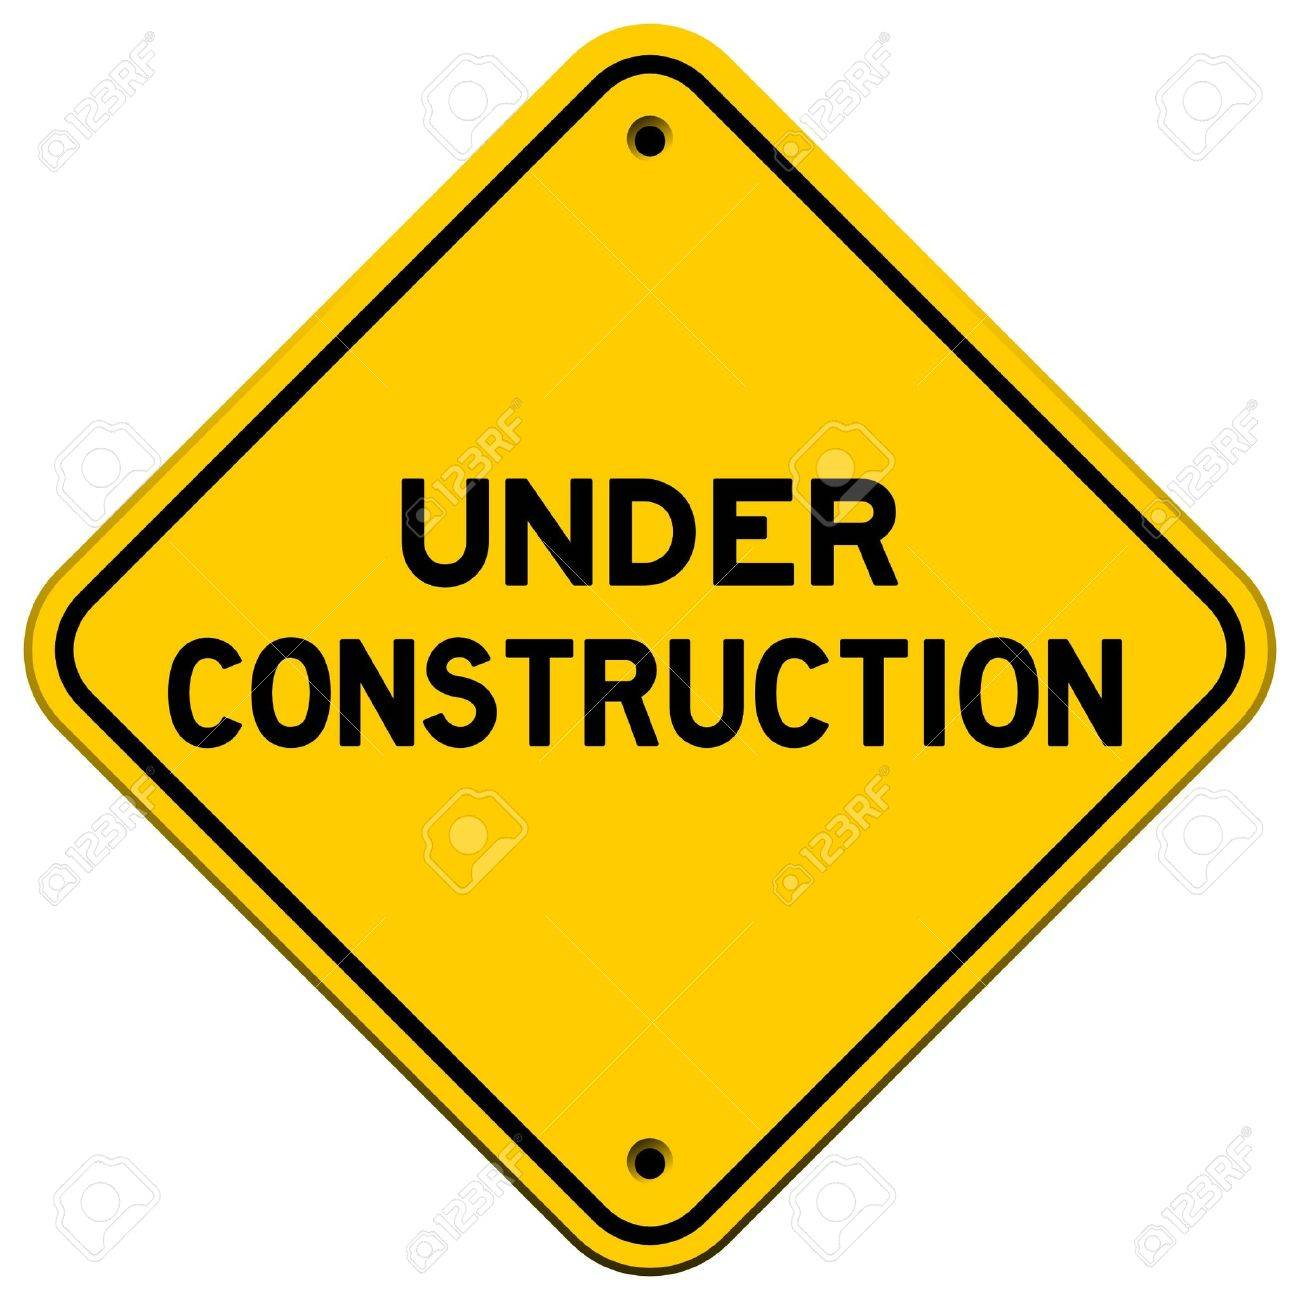 Under Construction Yellow Sign Stock Vector - 9840933